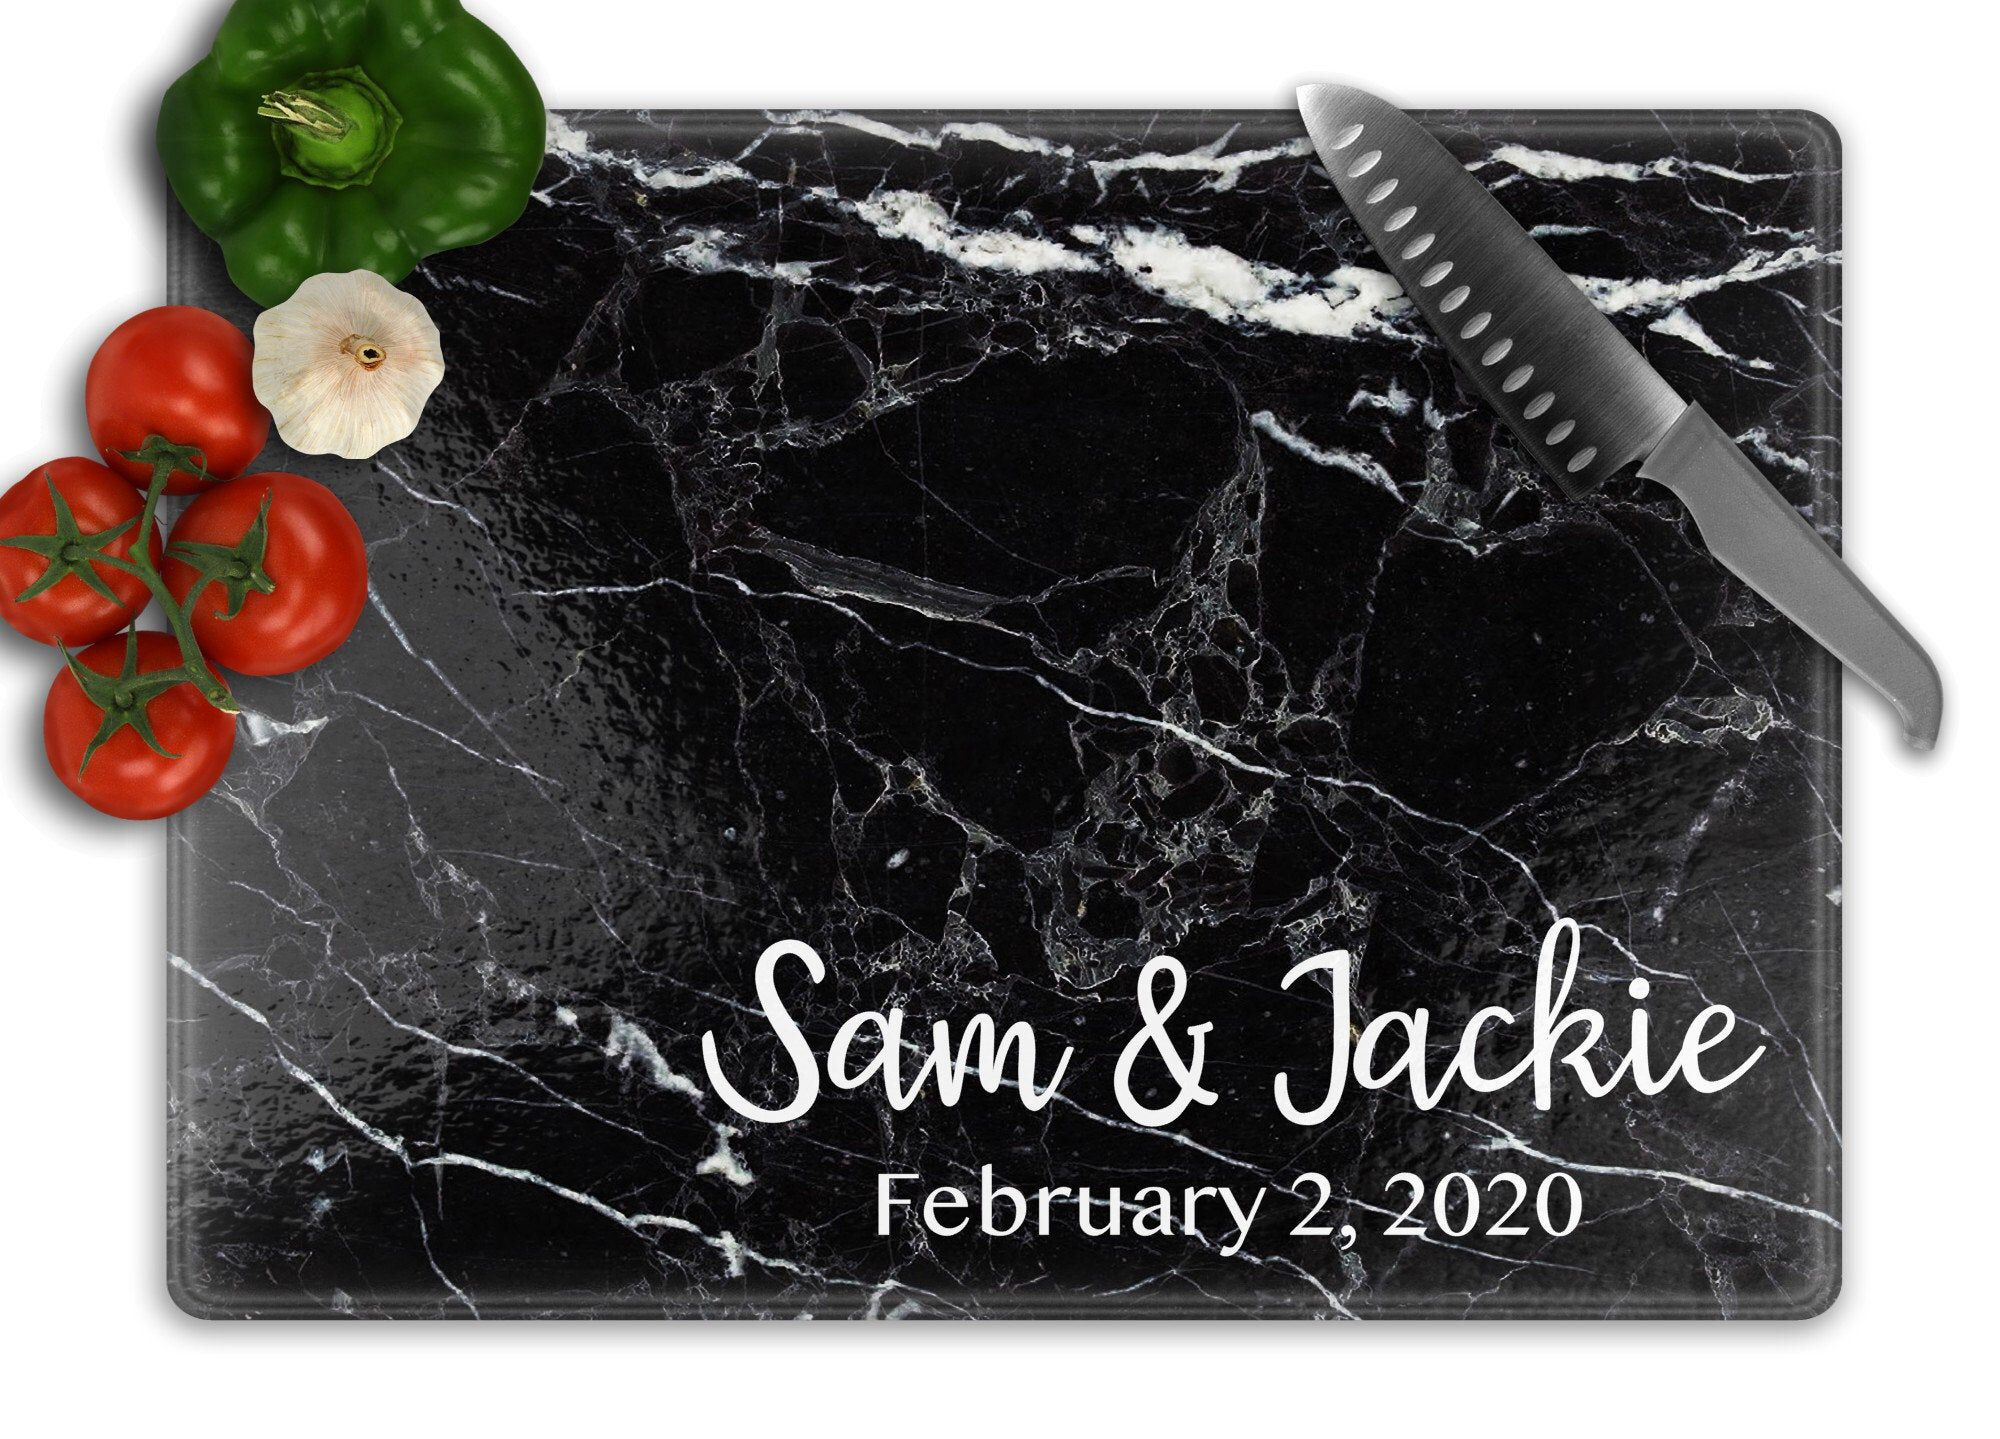 Custom Glass Cutting Board, Personalized Cutting Board, Kitchen Cutting Board, Wedding Gift for Couple, Valentine's Day Gift for Her